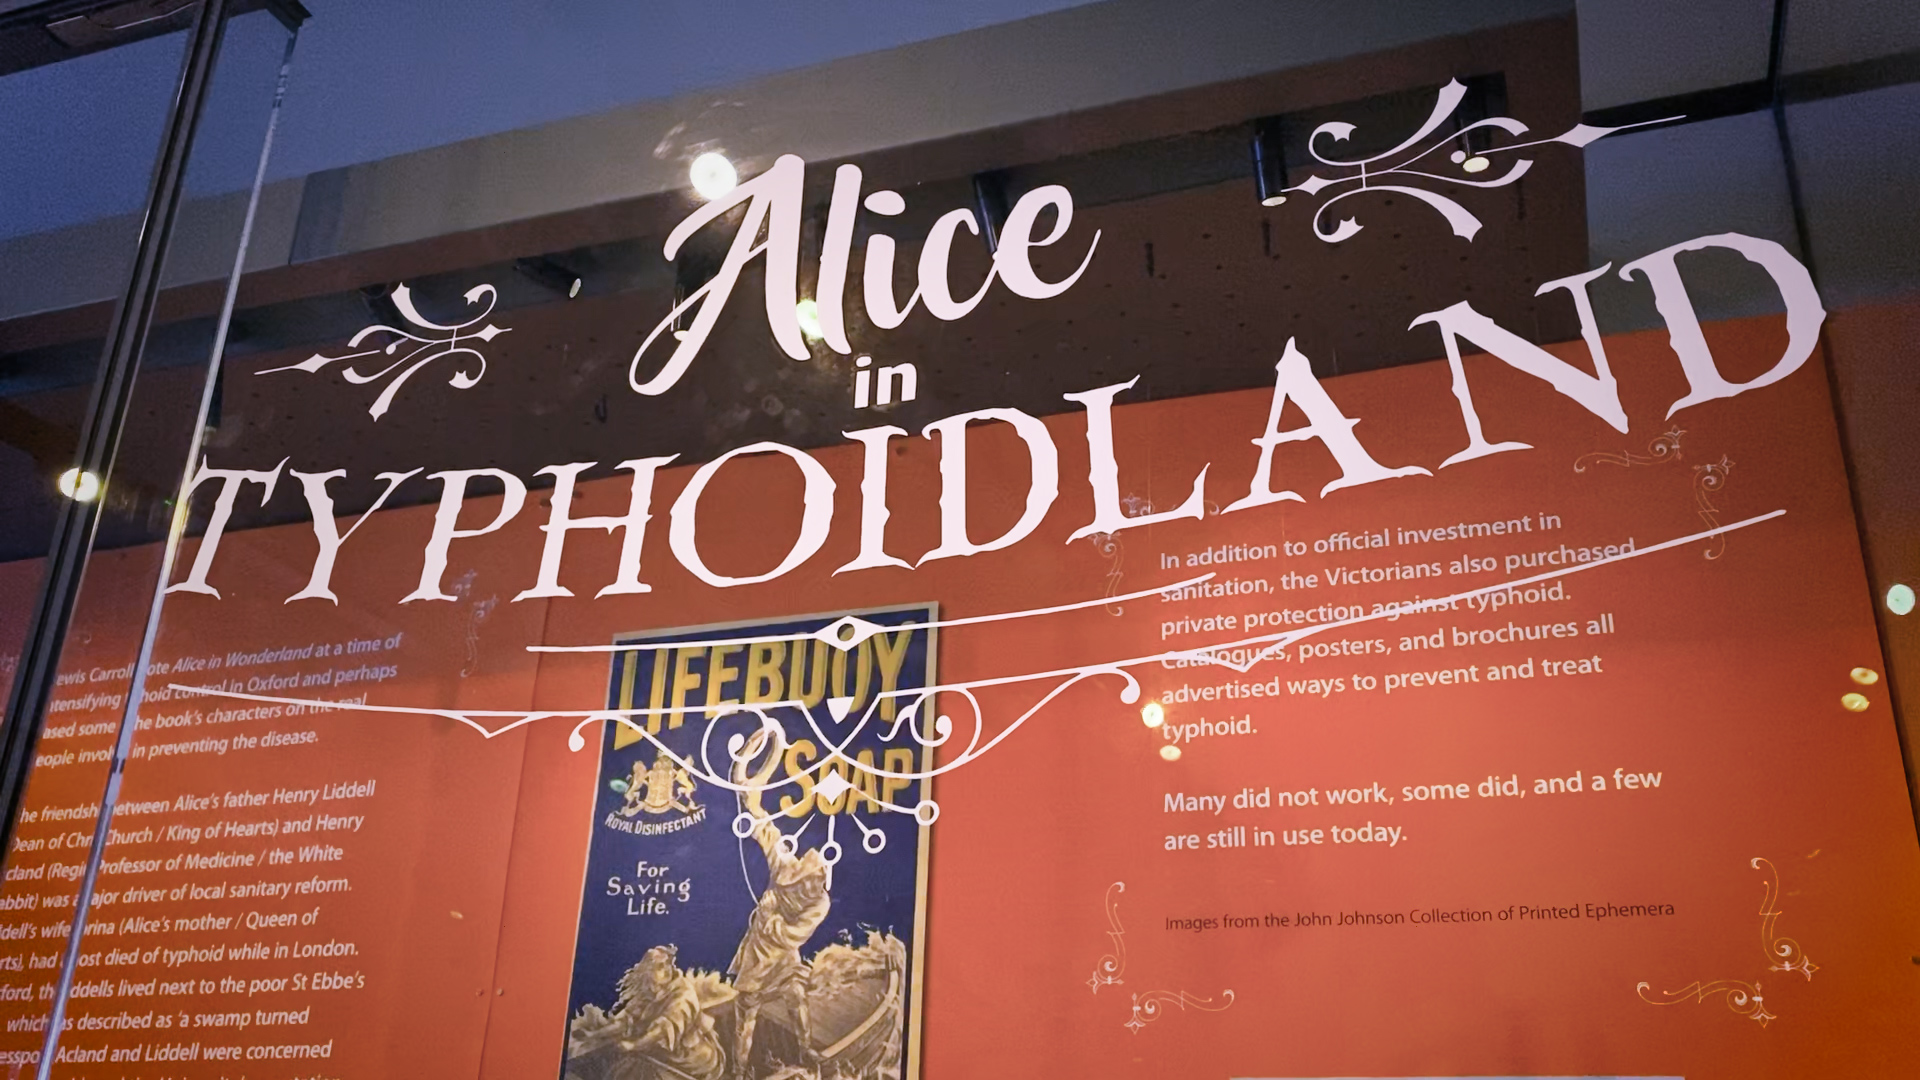 Alice in Typhoidland – Discover eLearning Produces Digital Learning Games For A New University of Oxford Exhibition